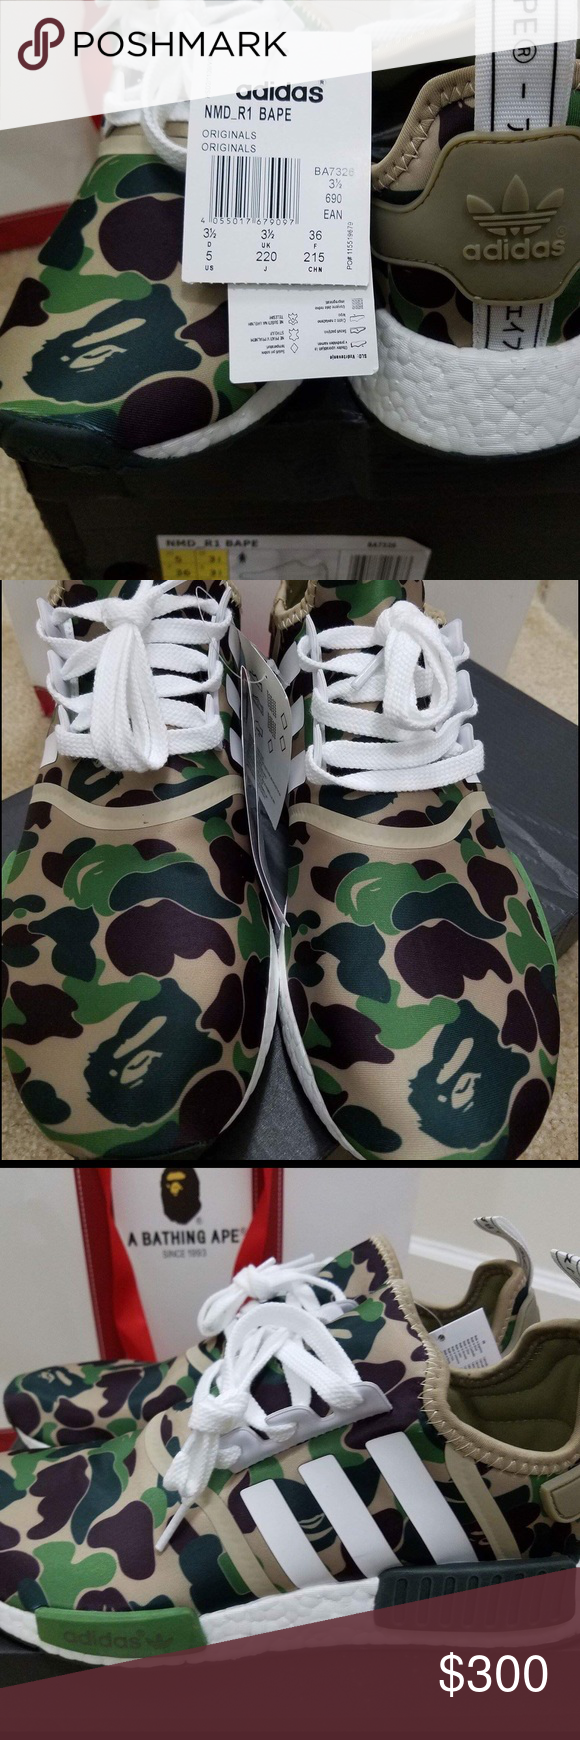 7c161e28ee791 ADIDAS NMD R1 BAPE B7326 US Women s Size 5 Authentic Adidas NMD R1 Green  Camo Bape on US Women s size 5 Adidas Shoes Sneakers